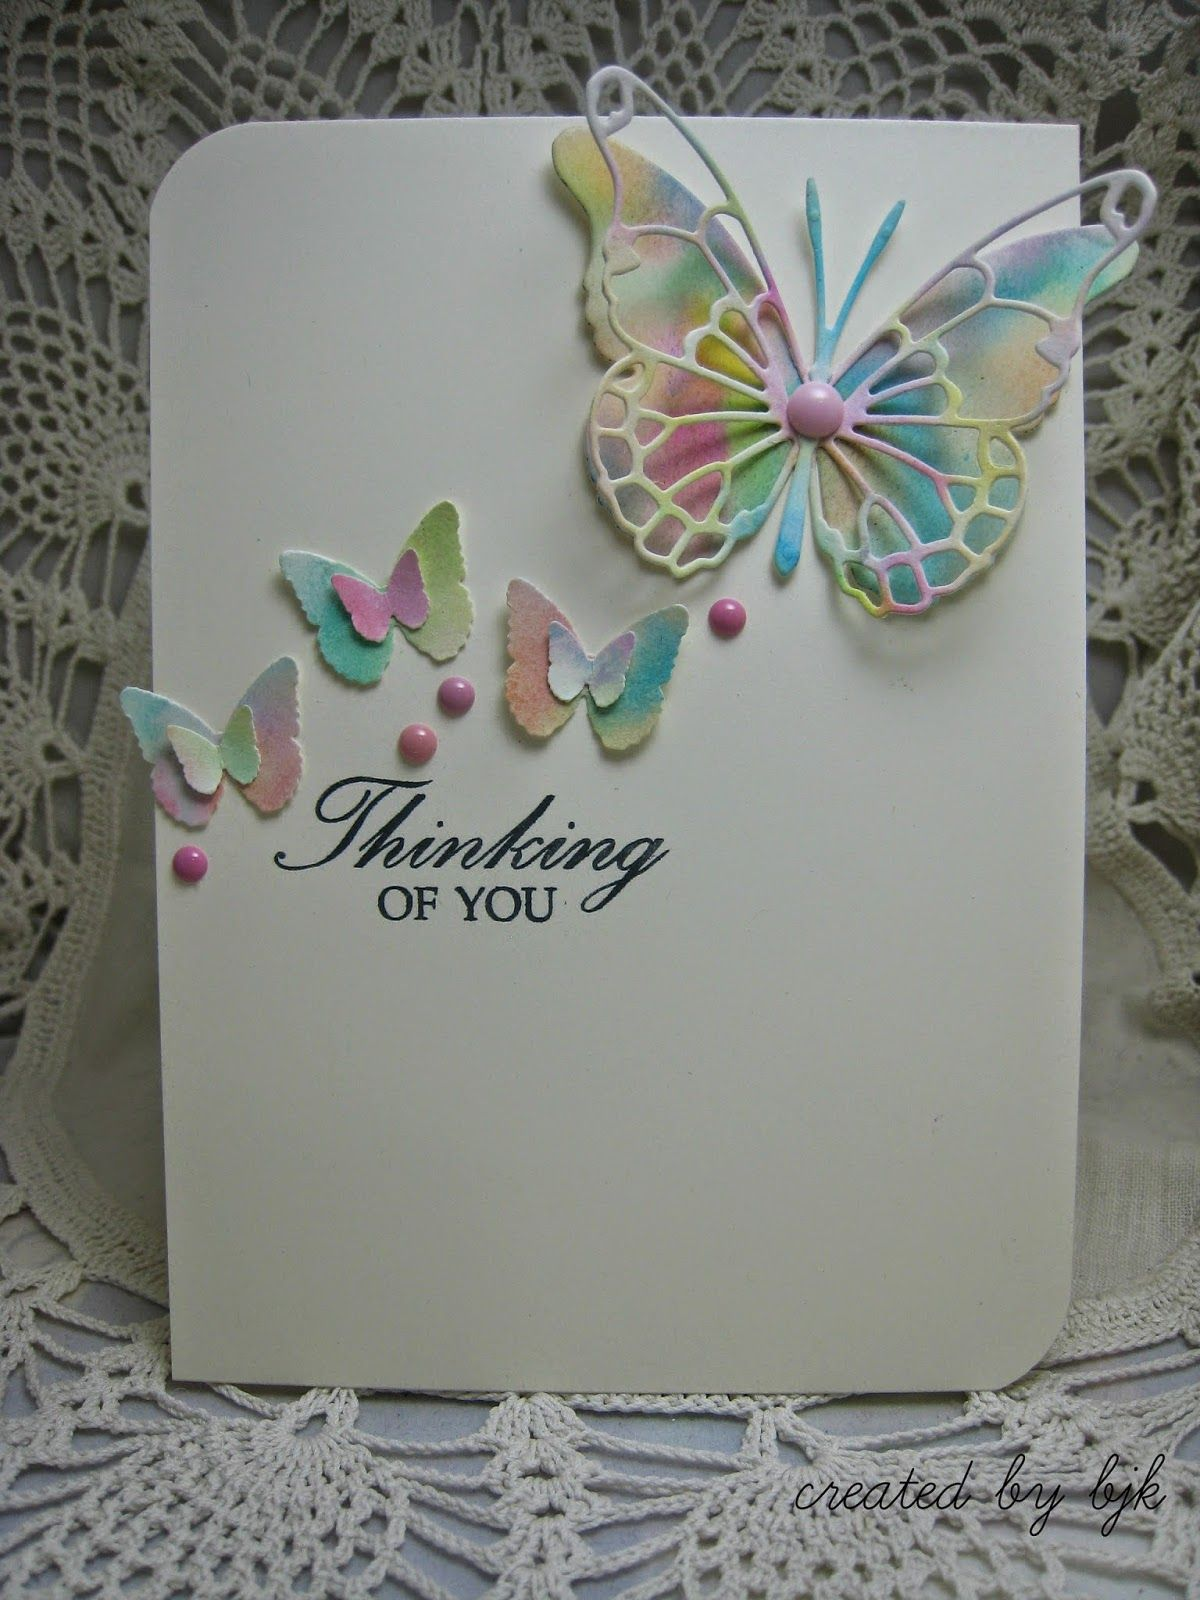 Thinking of you card using watercolor butterflies via createdbybjk thinking of you card using watercolor butterflies via createdbybjkspot kristyandbryce Choice Image